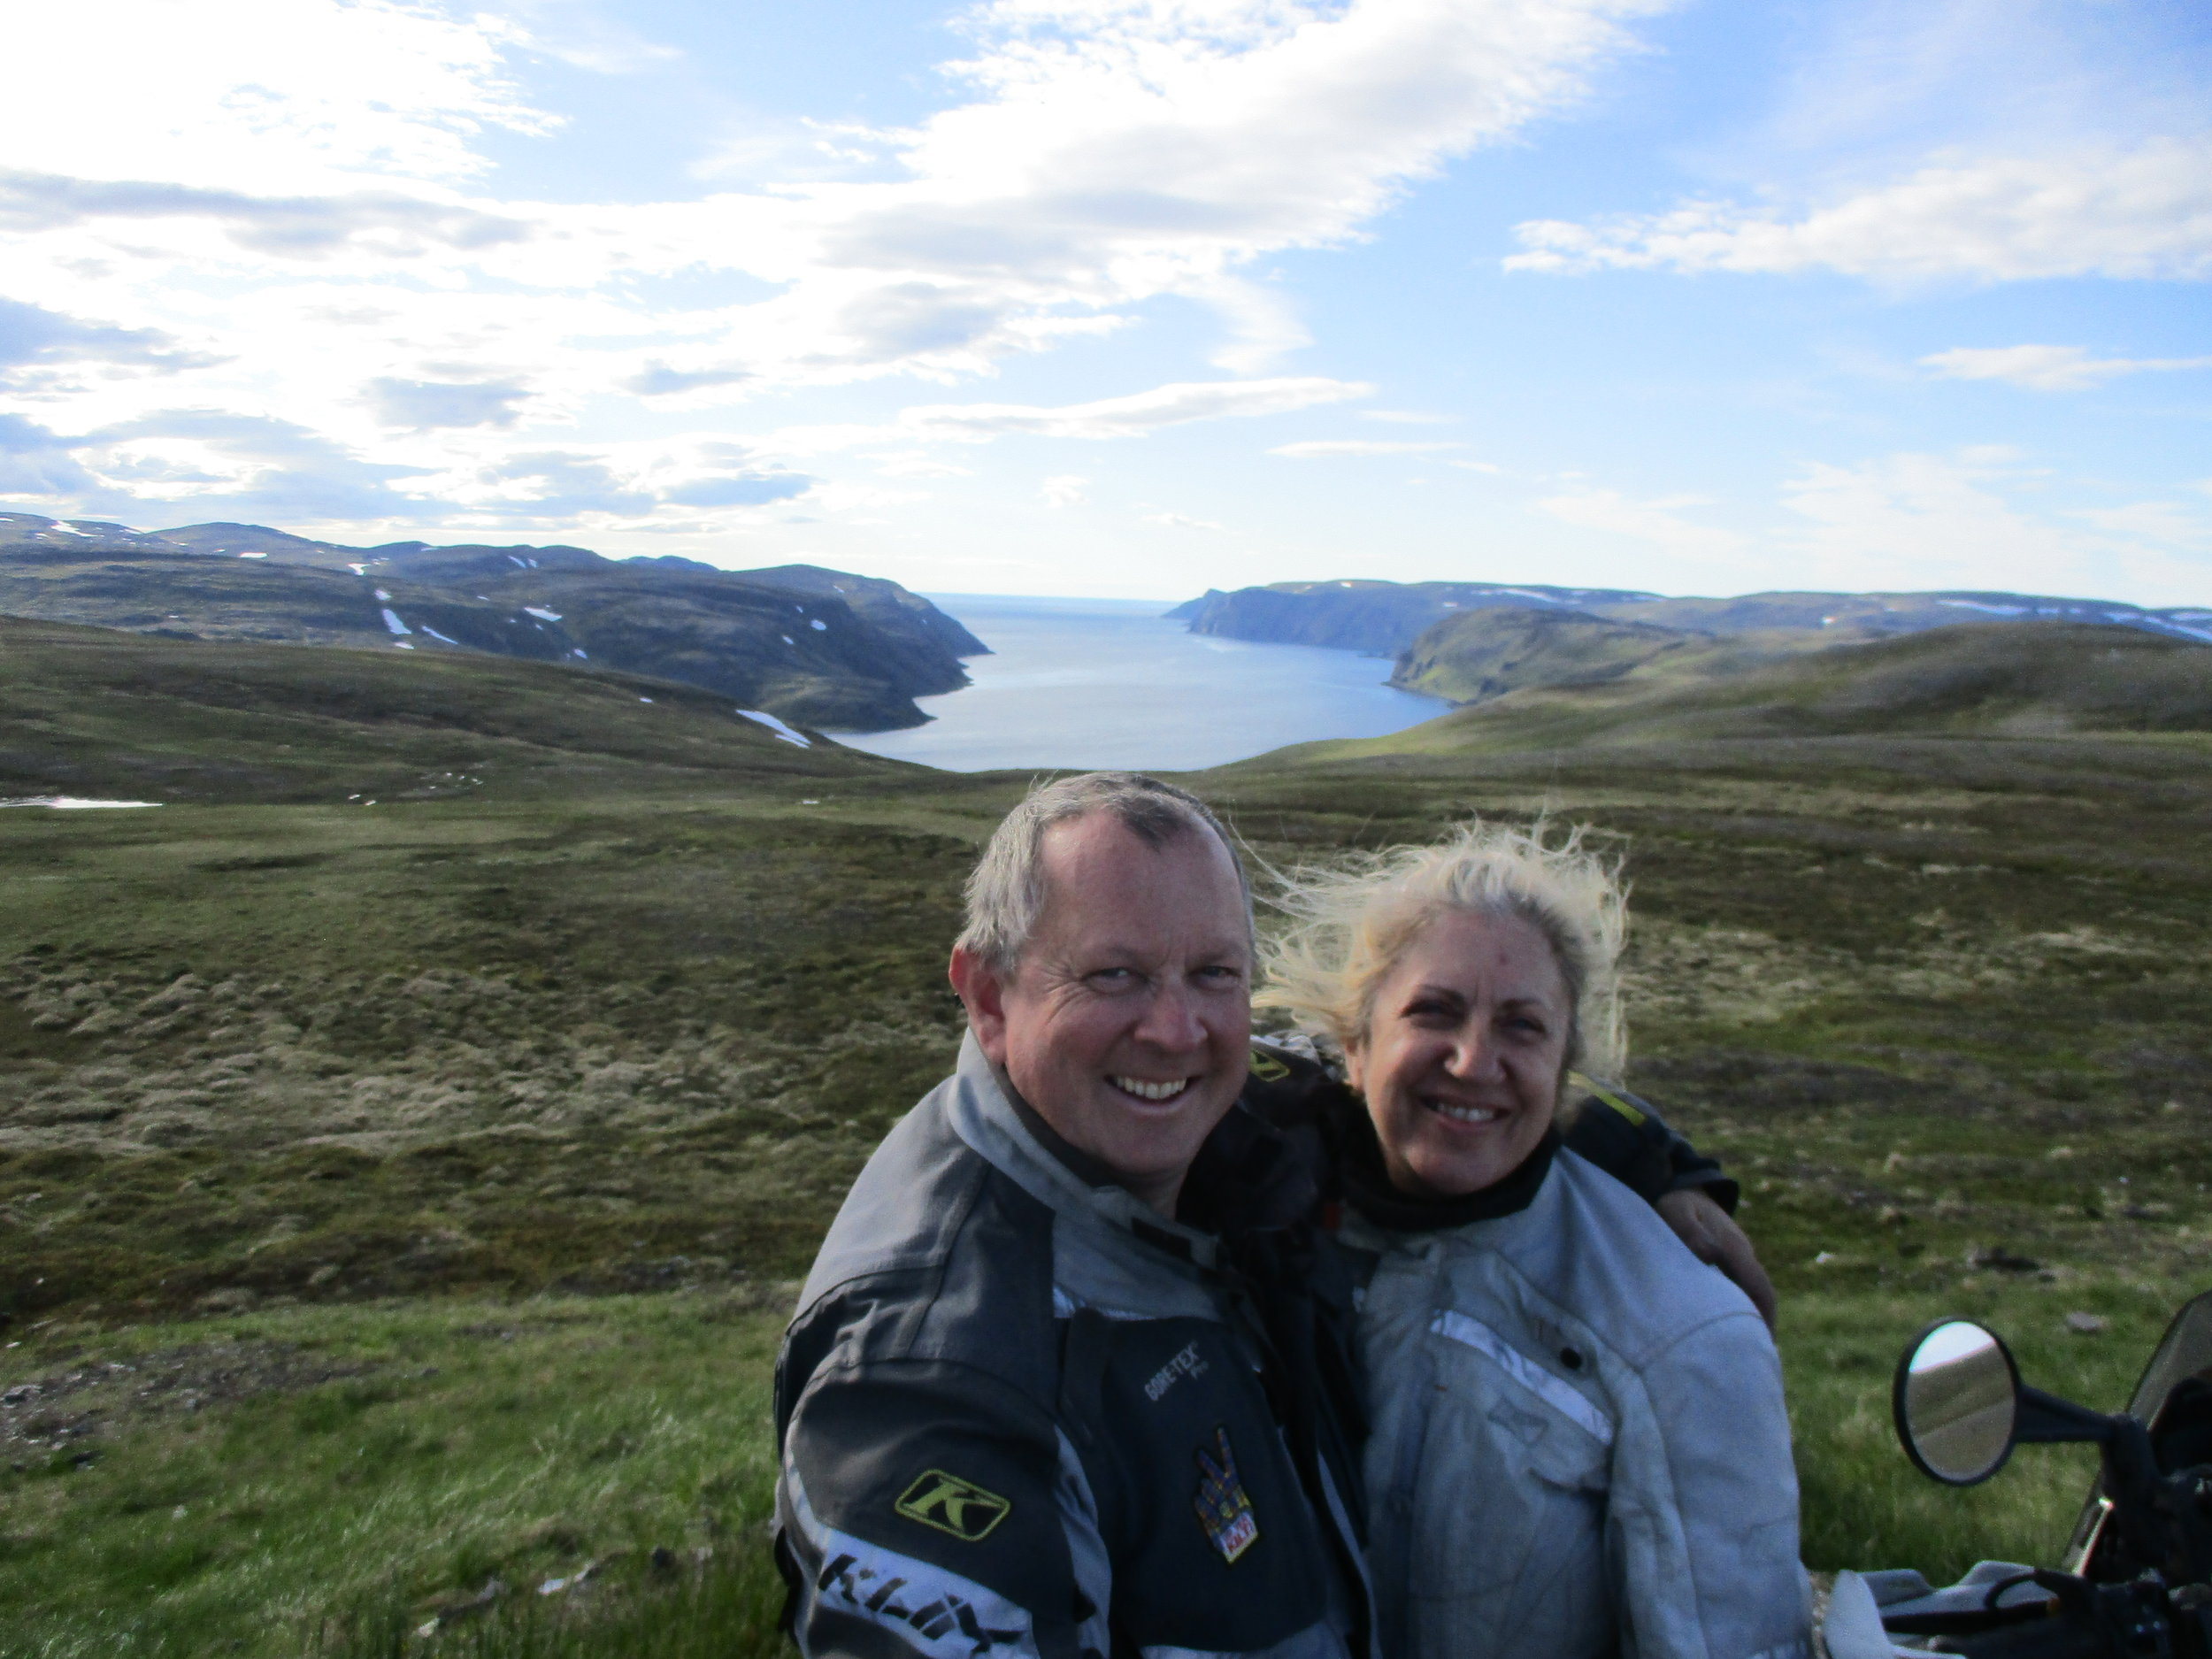 On the way up to Nordkapp